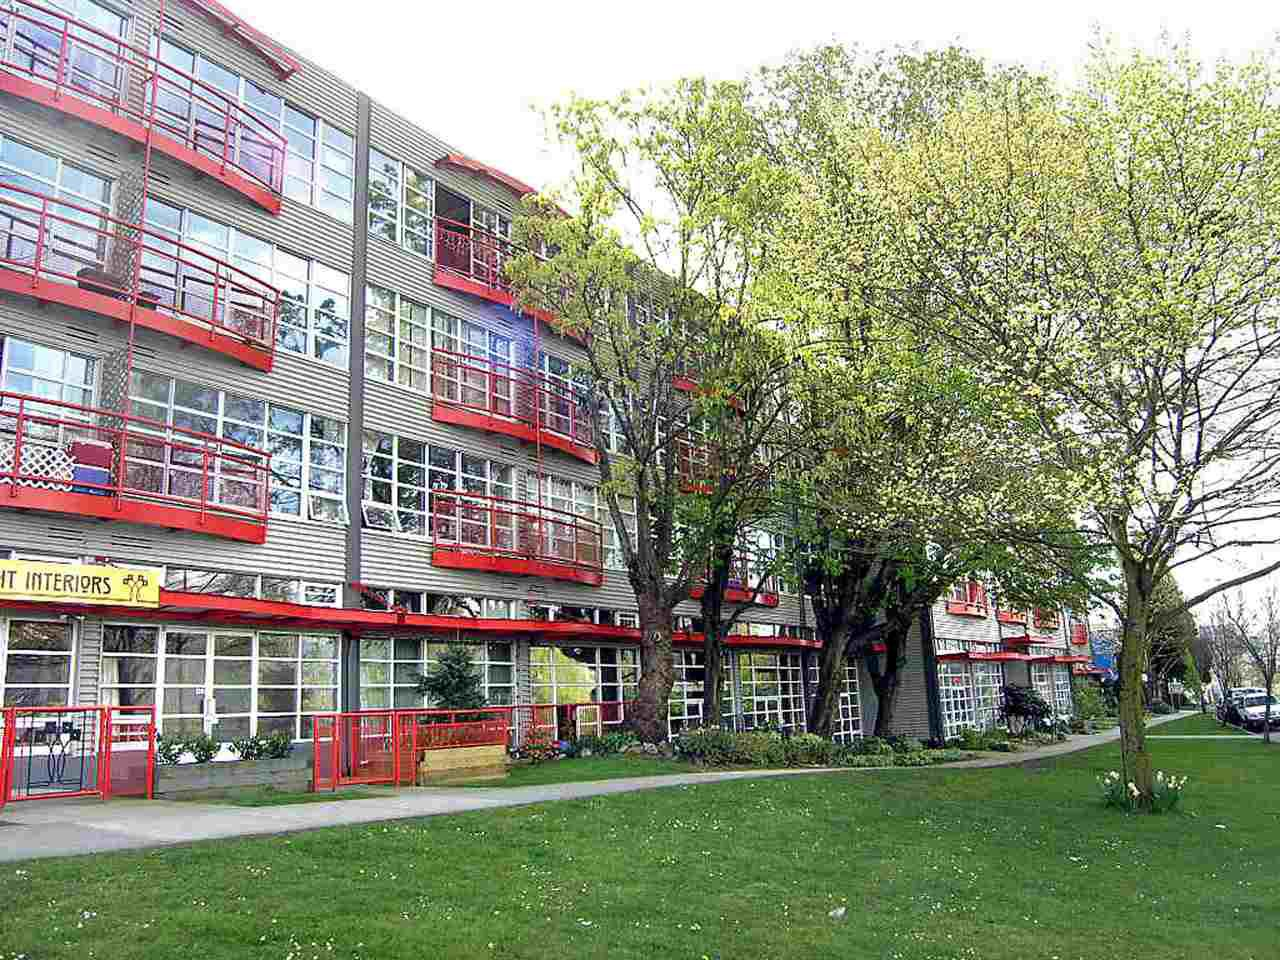 Main Photo: 214 350 E 2ND AVENUE in Vancouver: Mount Pleasant VE Condo for sale (Vancouver East)  : MLS®# R2014150